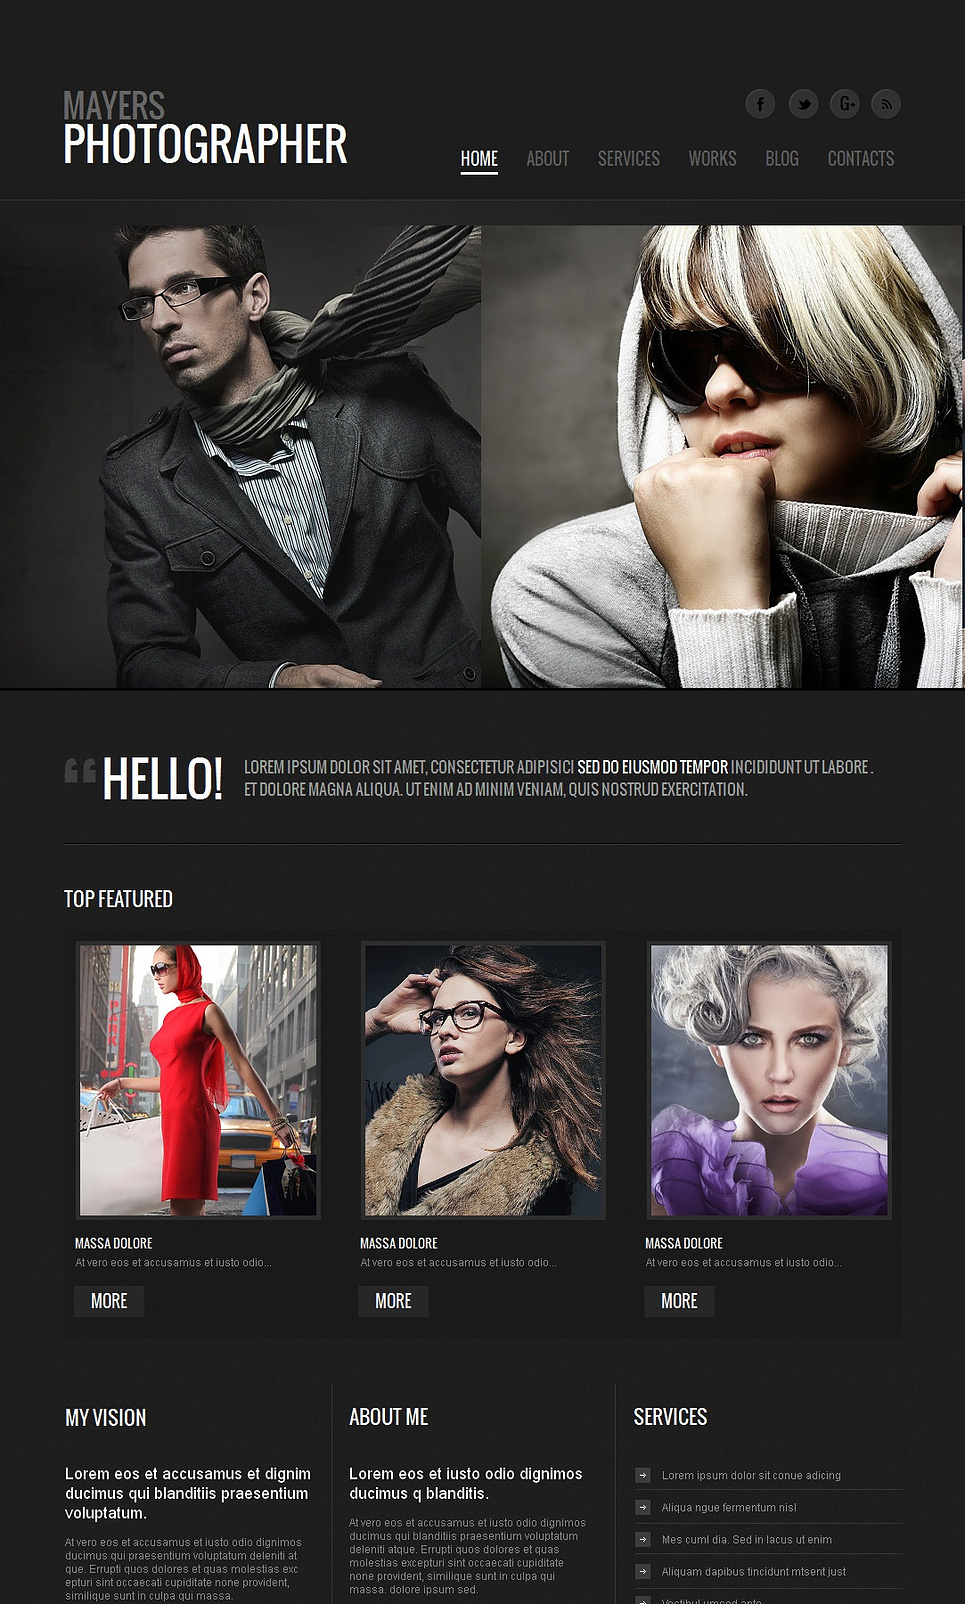 Dark Portfolio Website Template with Sliding Gallery - image